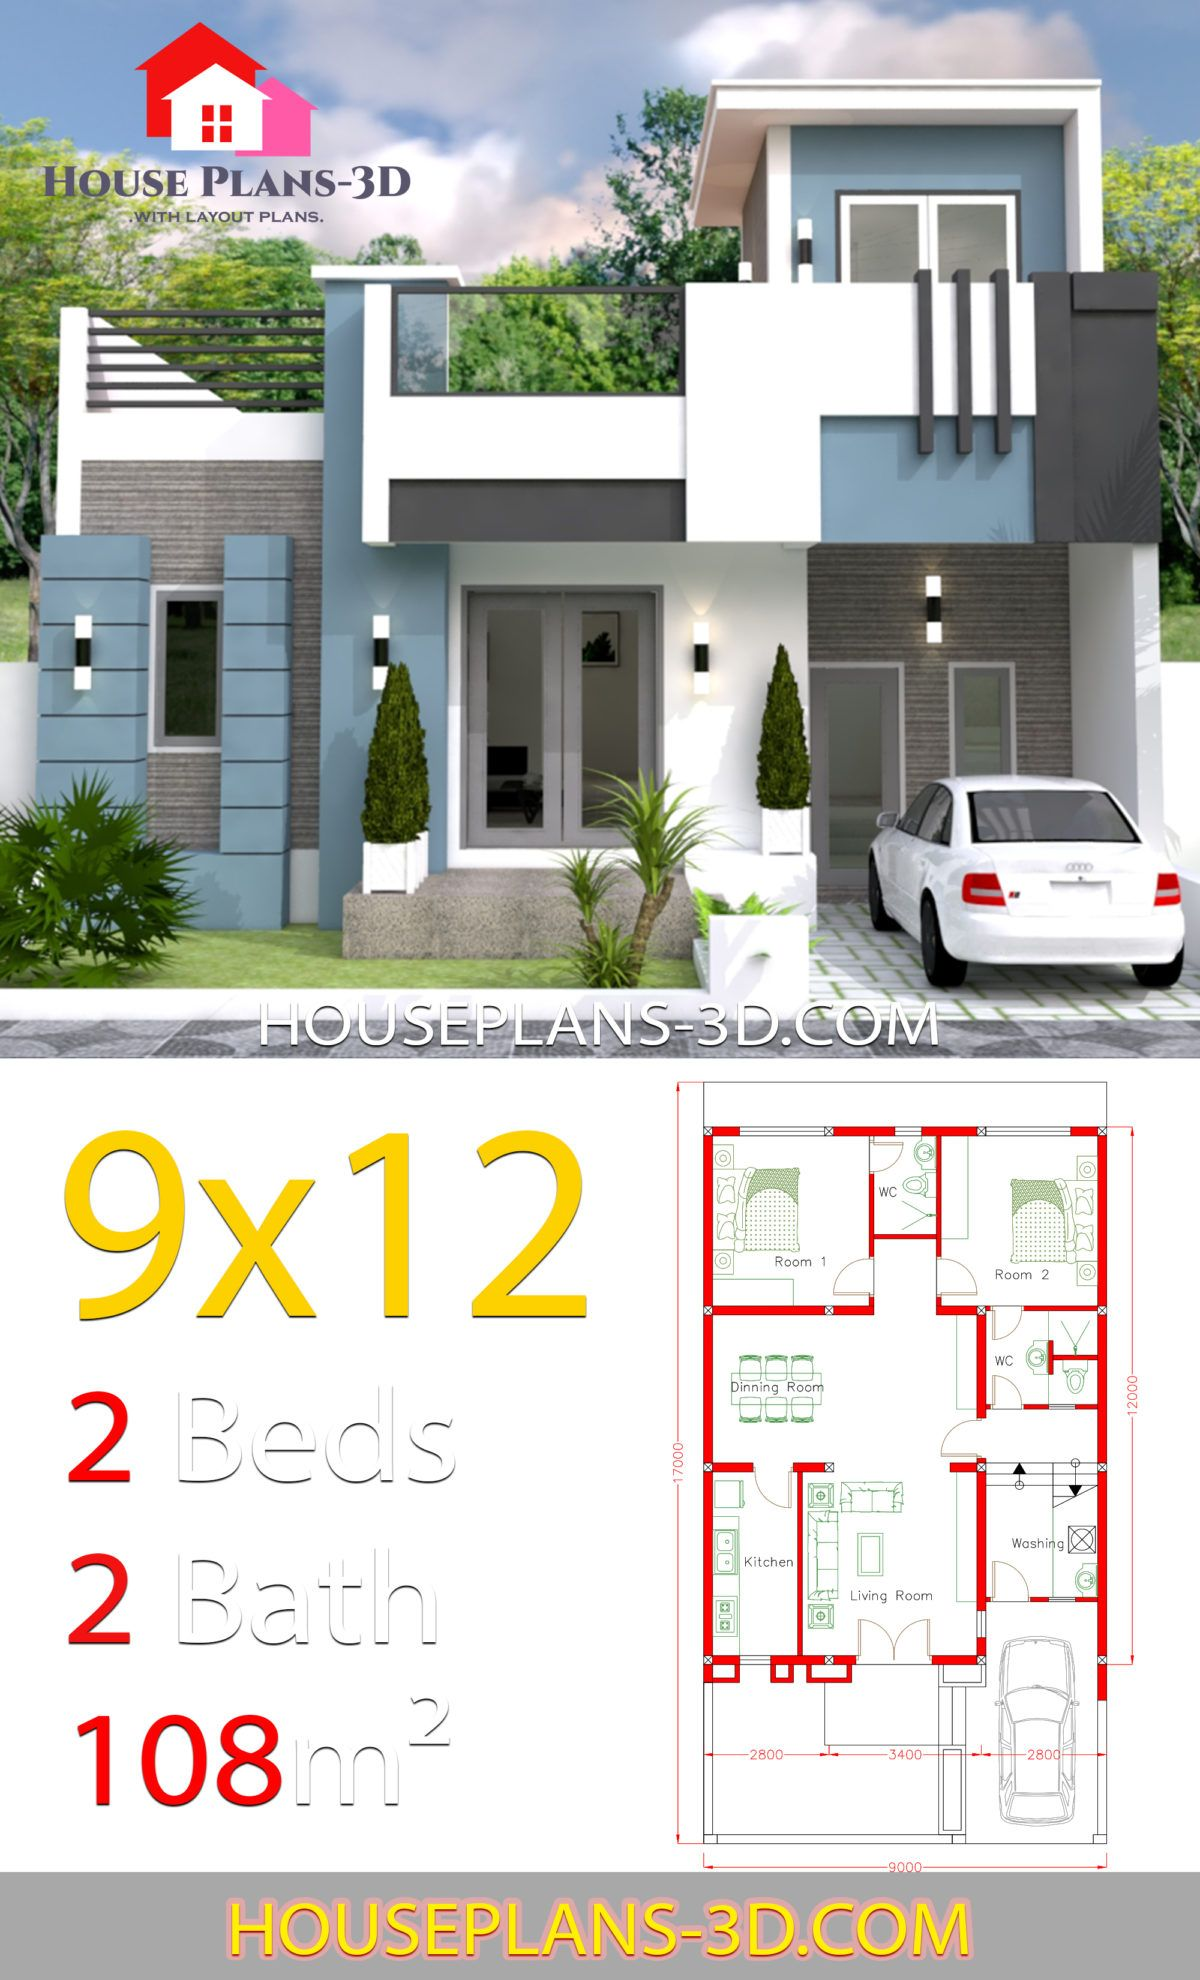 House Design 9x12 With 2 Bedrooms Full Plans House Plans 3d House Plans Small House Design Exterior Architectural House Plans